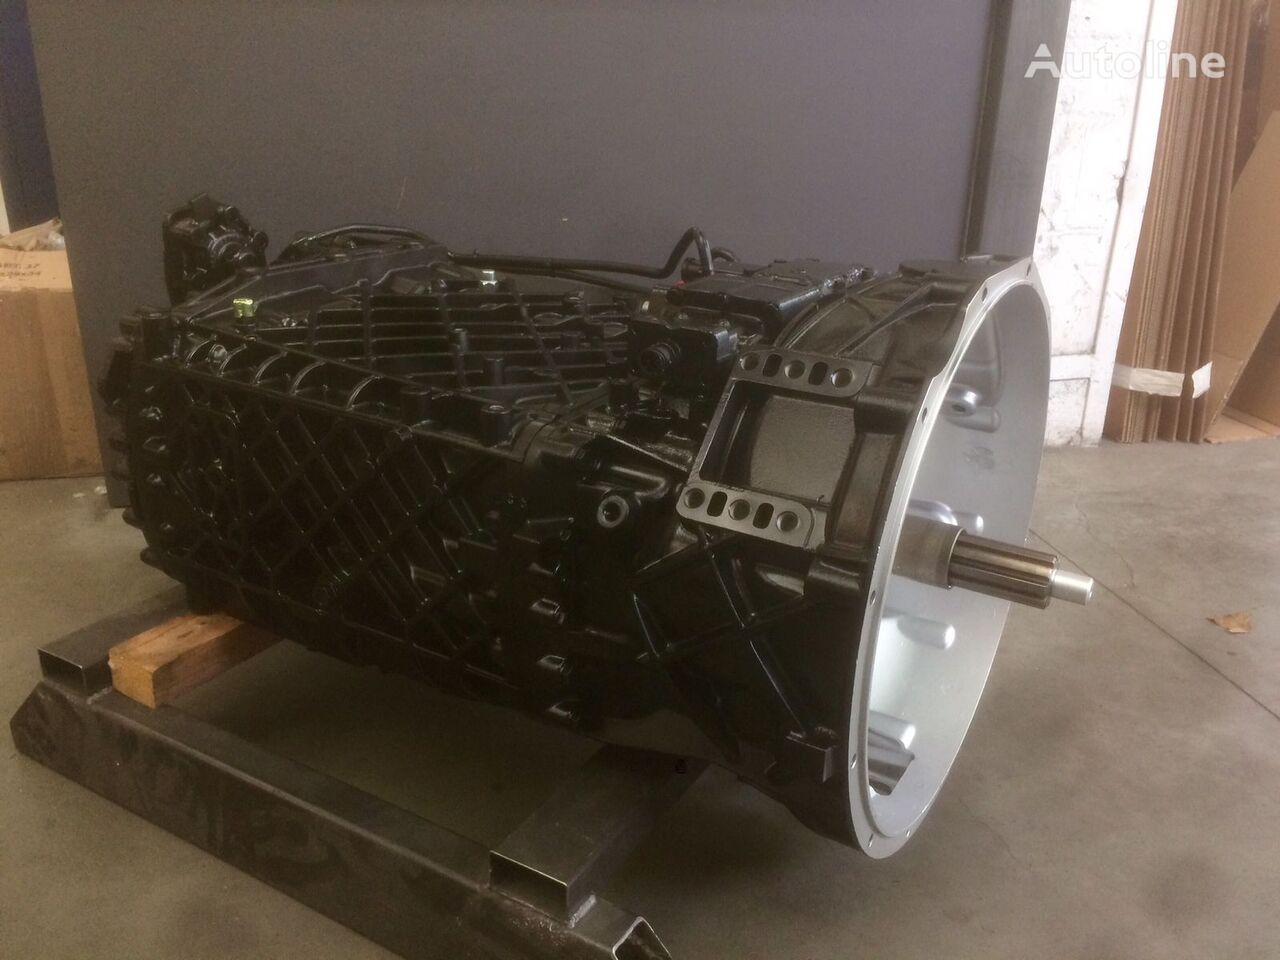 ZF 16S221 gearbox